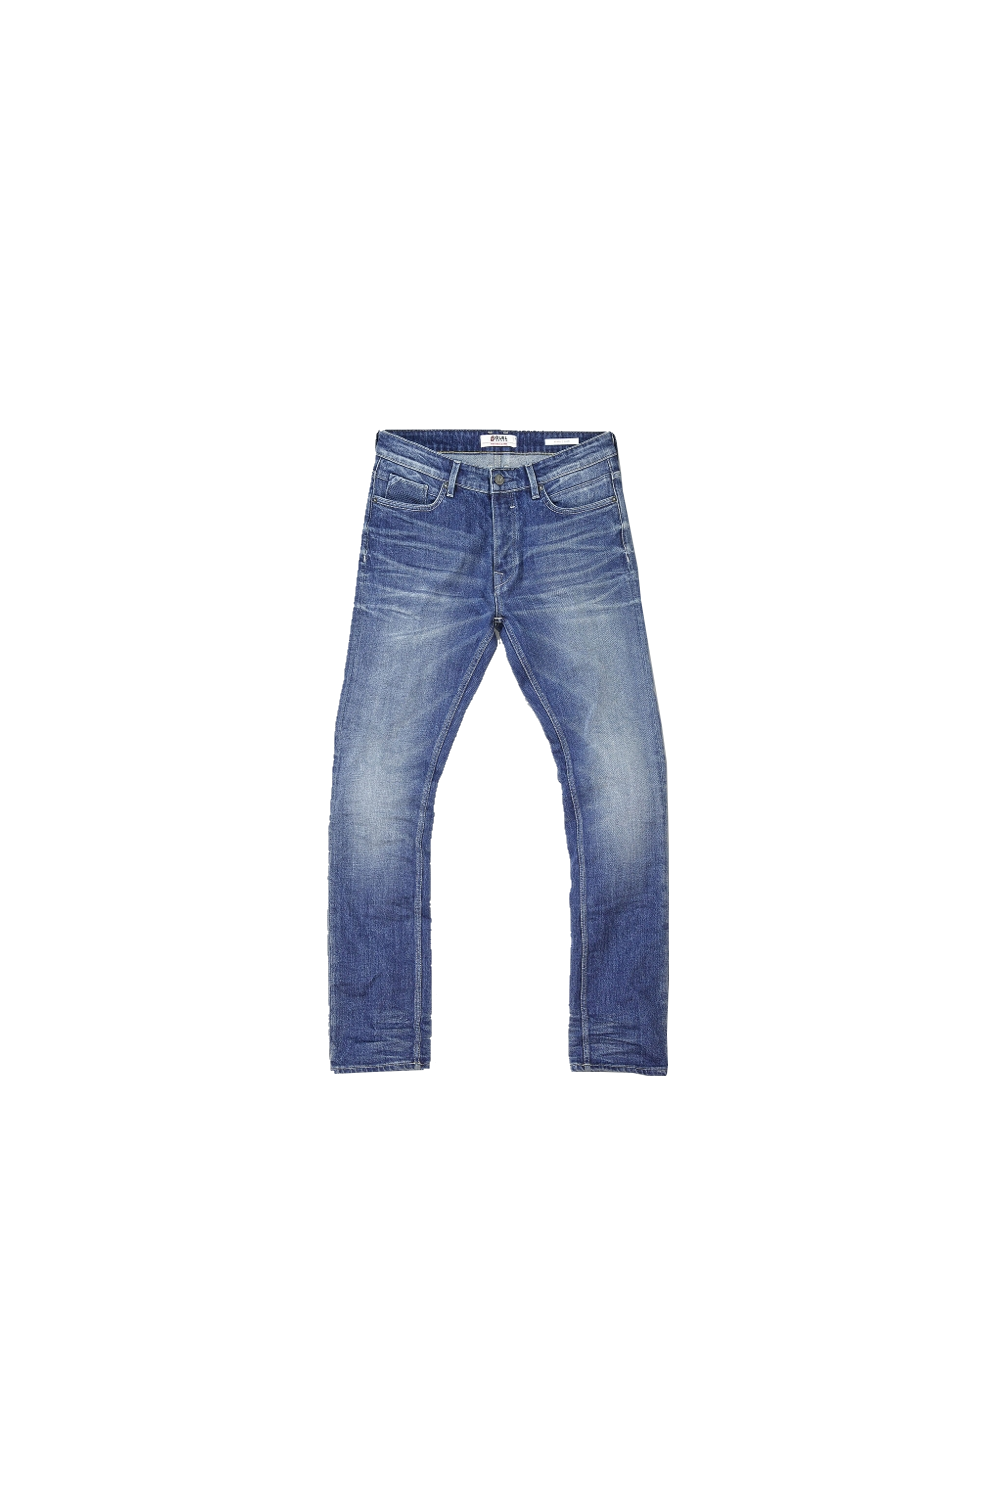 hiryu slim tapered fit jeans vintage blue from thirtysix uk. Black Bedroom Furniture Sets. Home Design Ideas